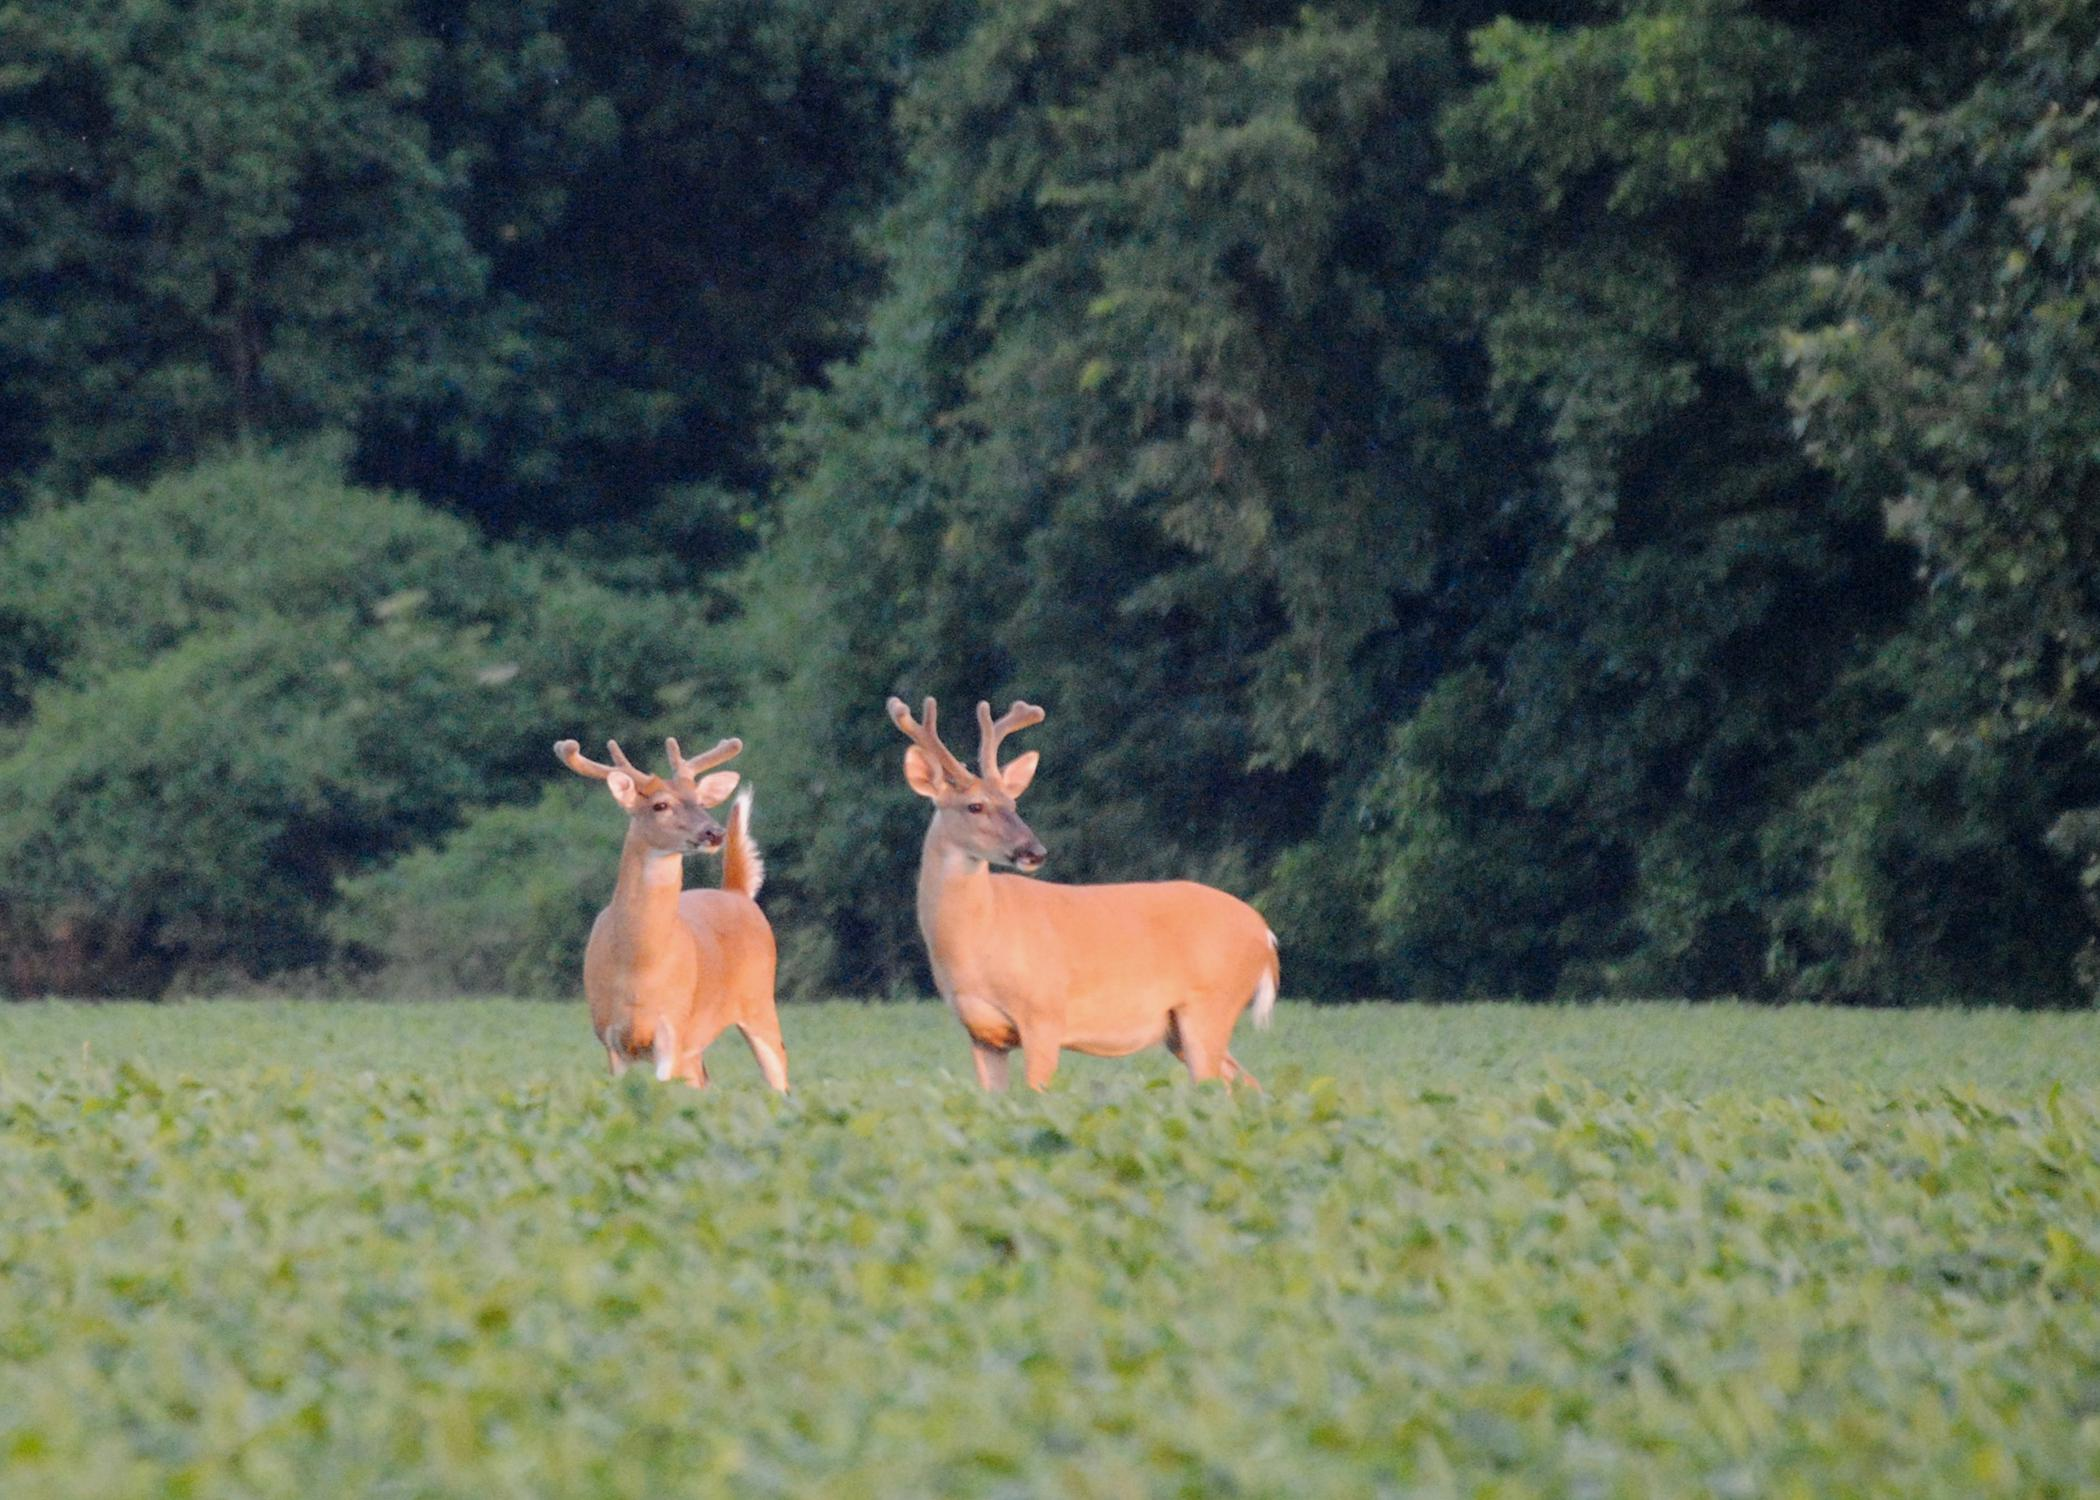 Warm-season food plots planted with legumes, such as these soybeans, help white-tailed deer get the protein they need when natural vegetation is less plentiful and harder to digest. (Submitted photo)